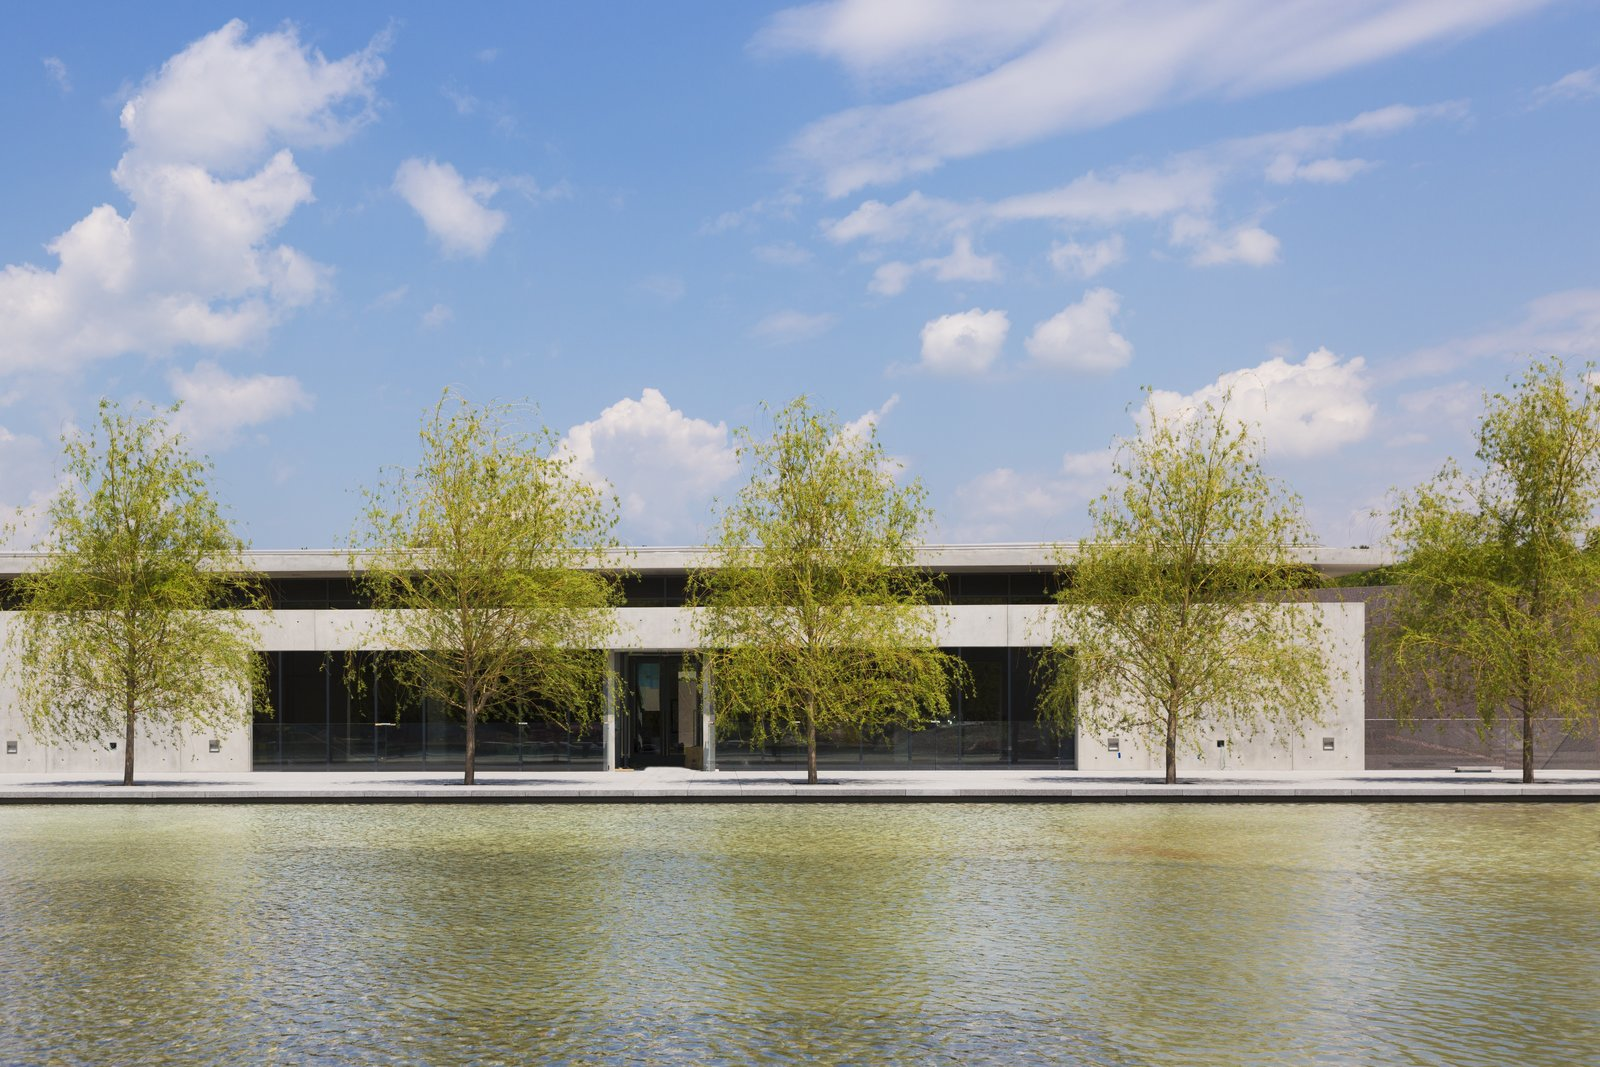 The Clark Art Institute's tiered reflecting pools were conceived by Tadao Ando and developed by Reed Hilderbrand Landscape Architecture. Image courtesy of the Clark Art Institute.  Photo 1 of 7 in Tadao Ando's Reimagined Clark Art Institute